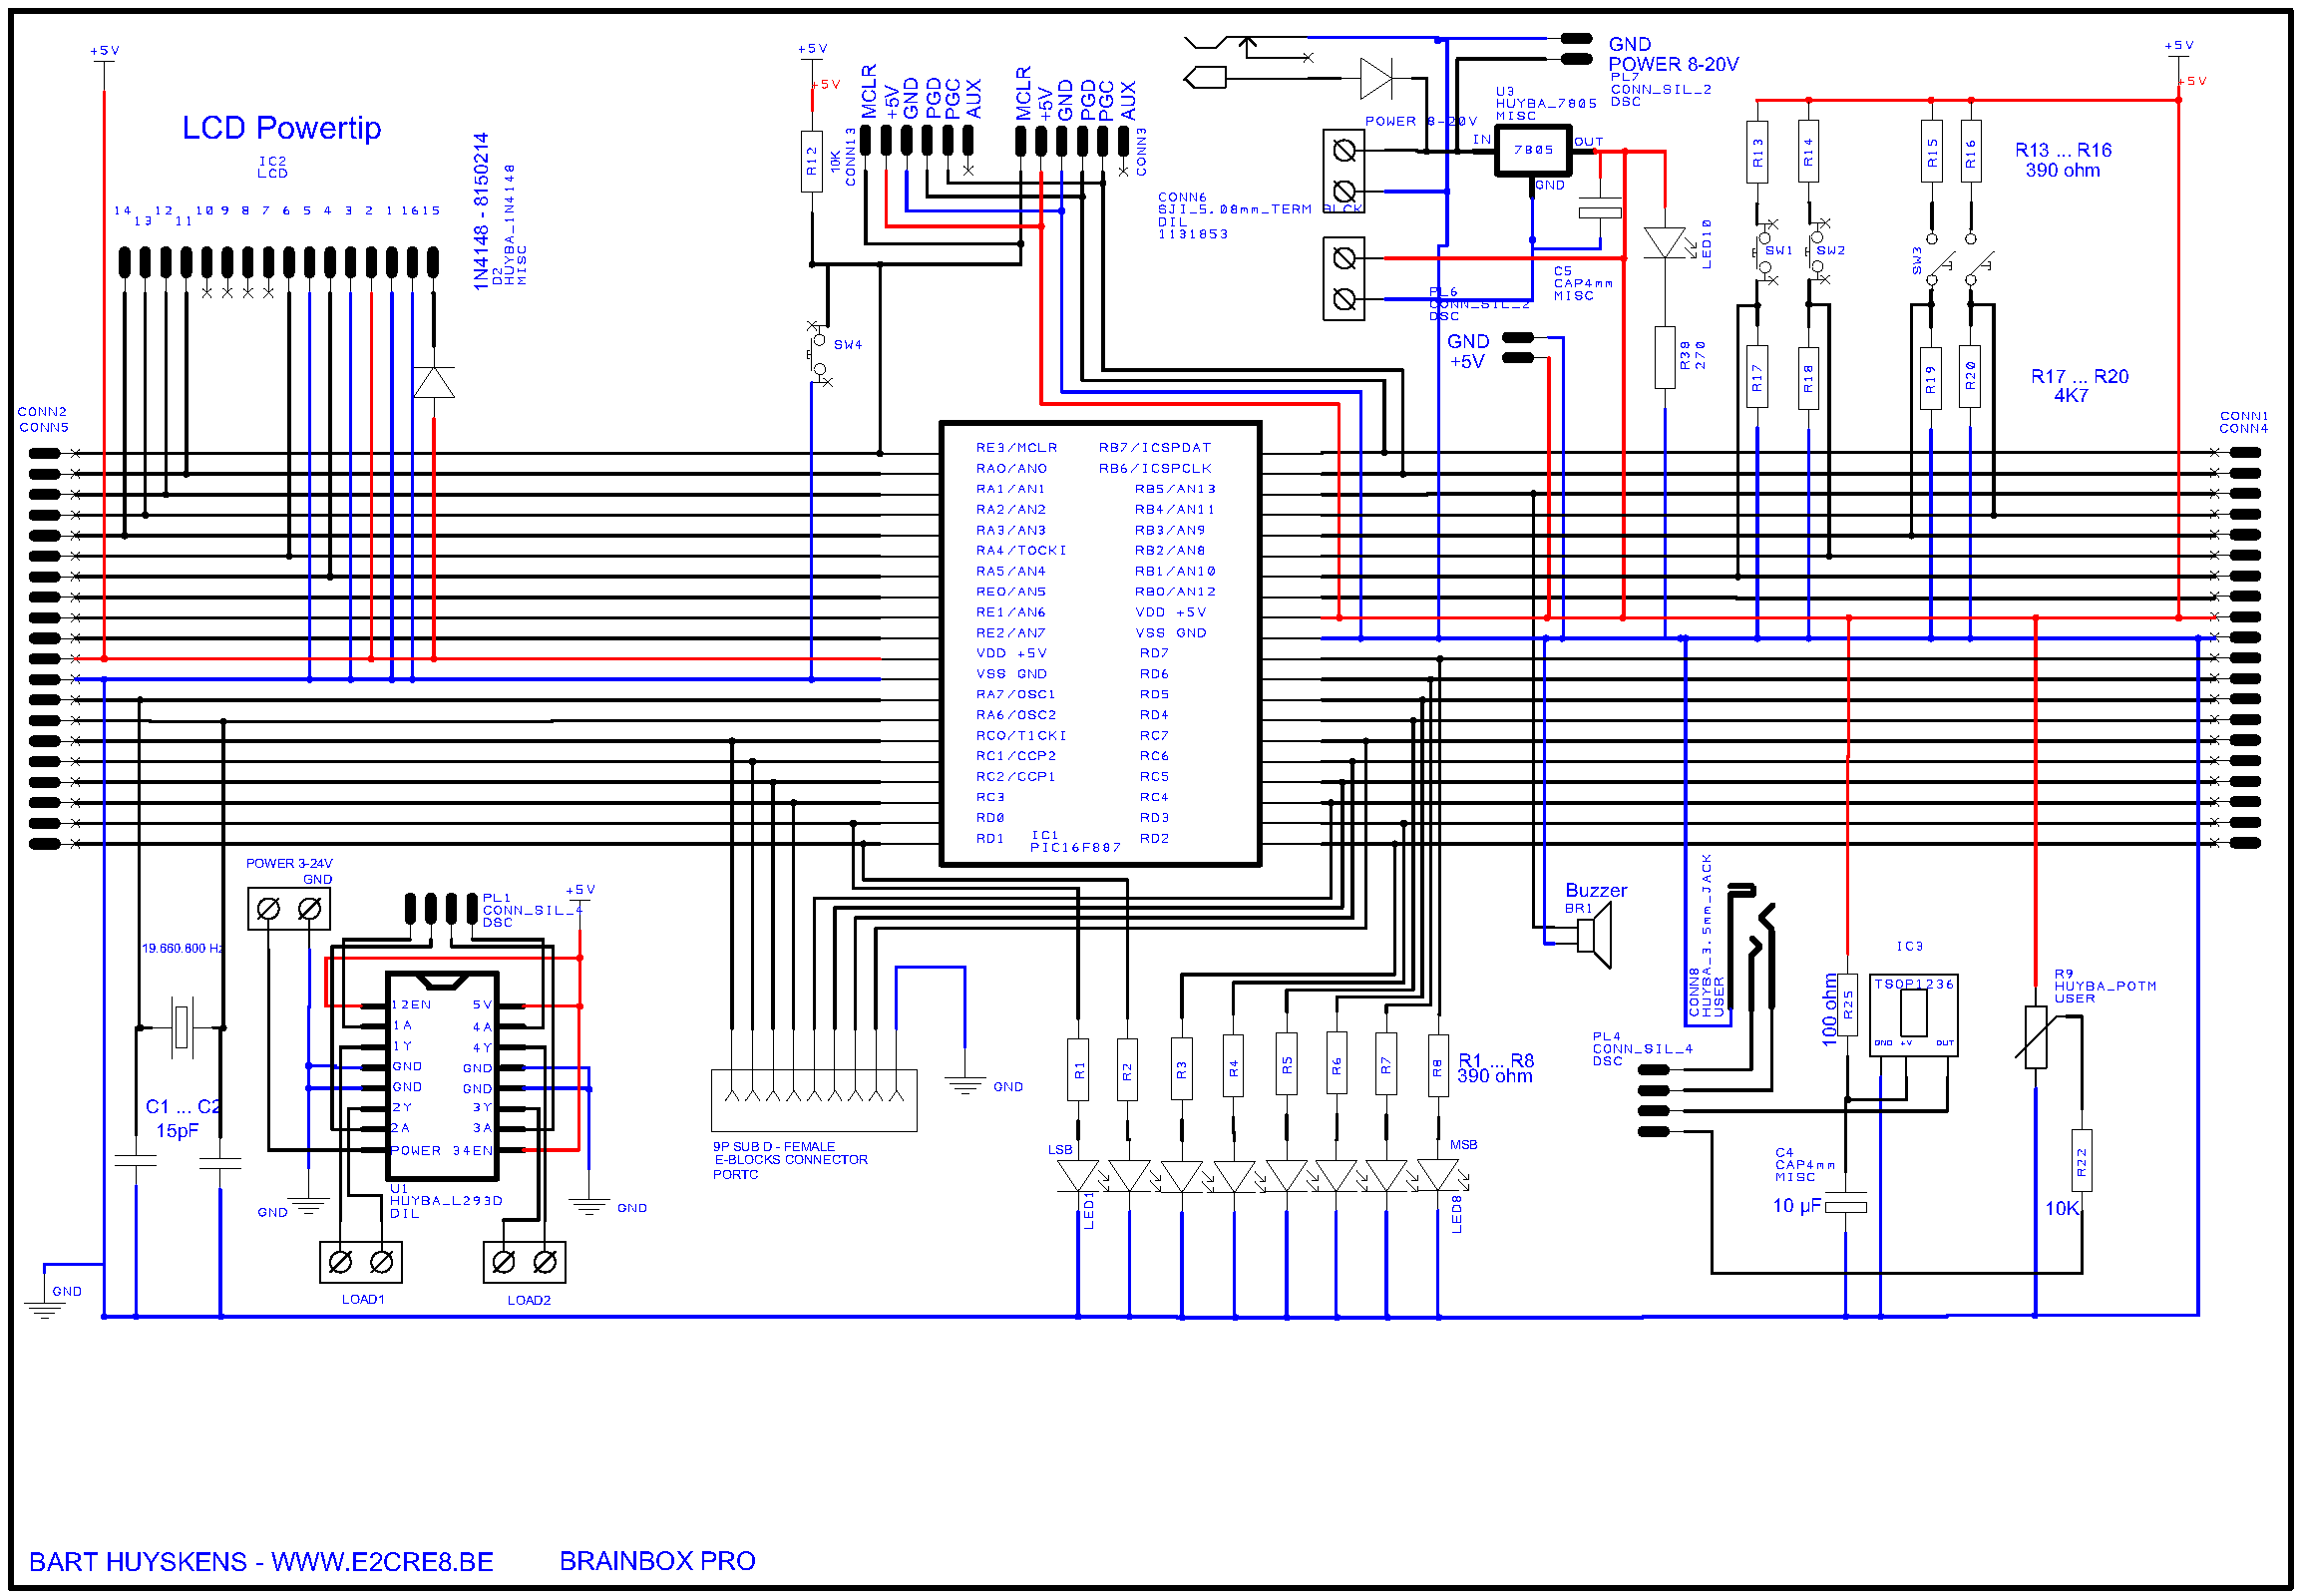 BRAINBOX_PRO - Schematic